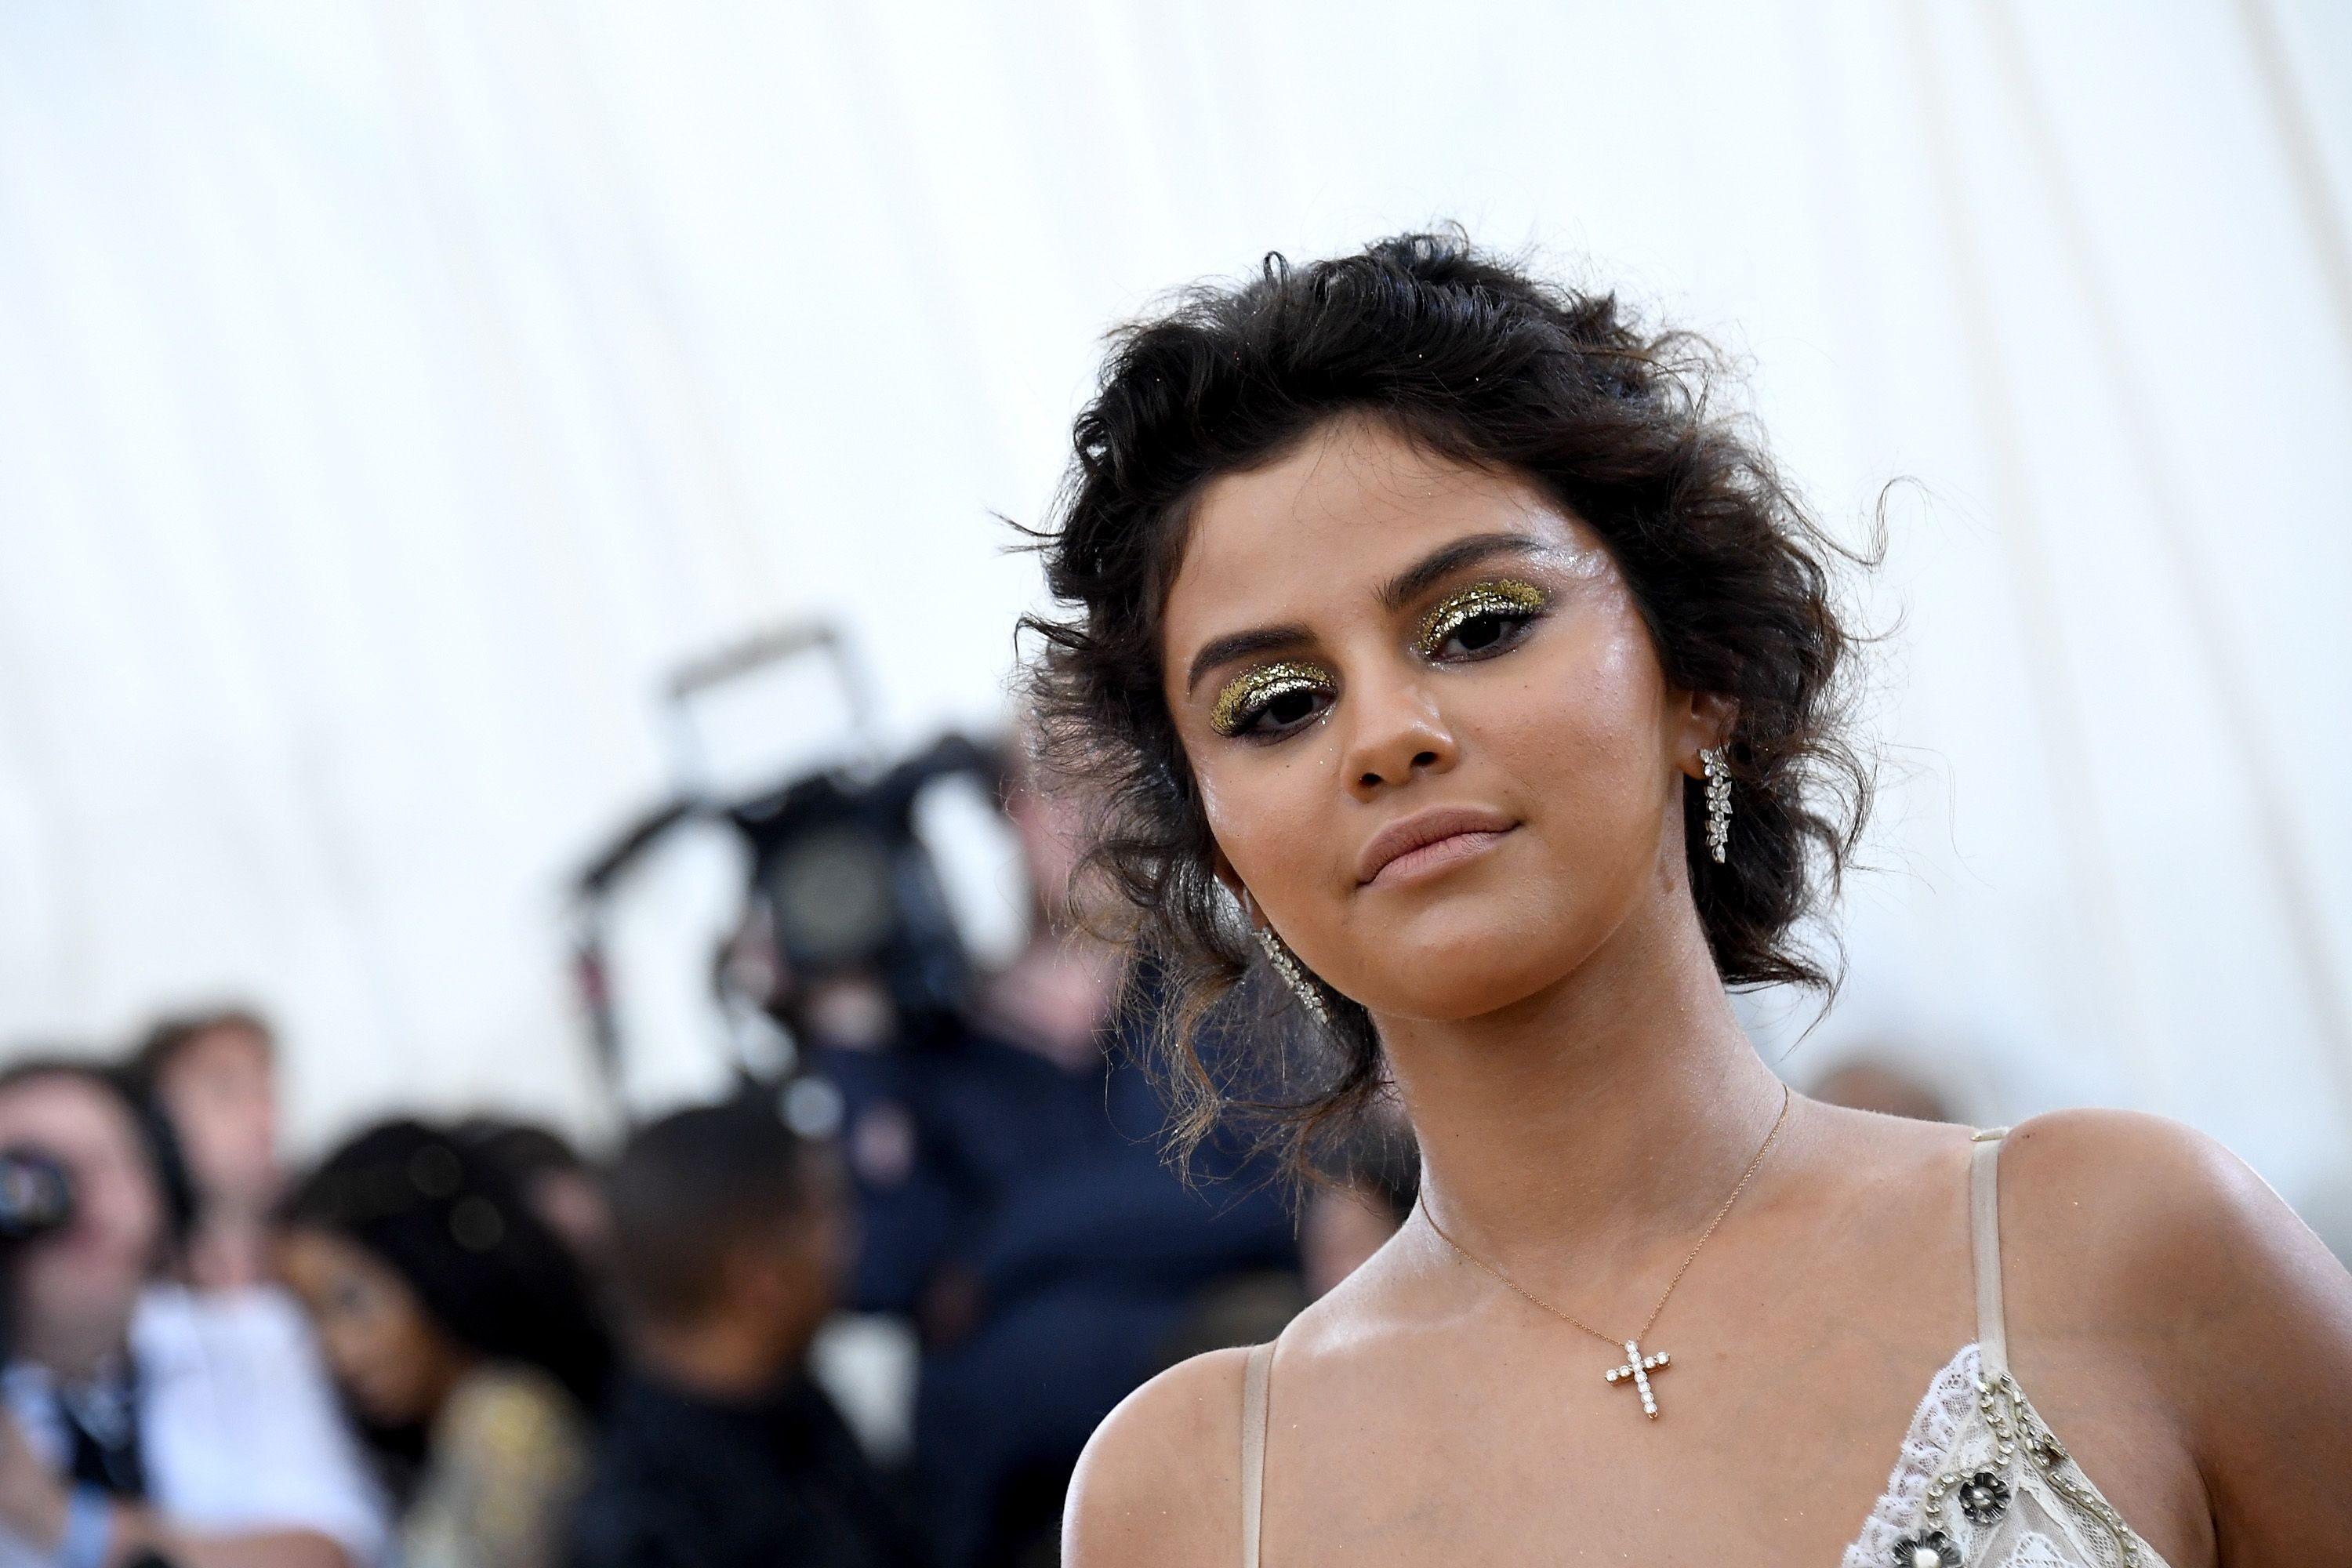 selena gomez dating news 2019